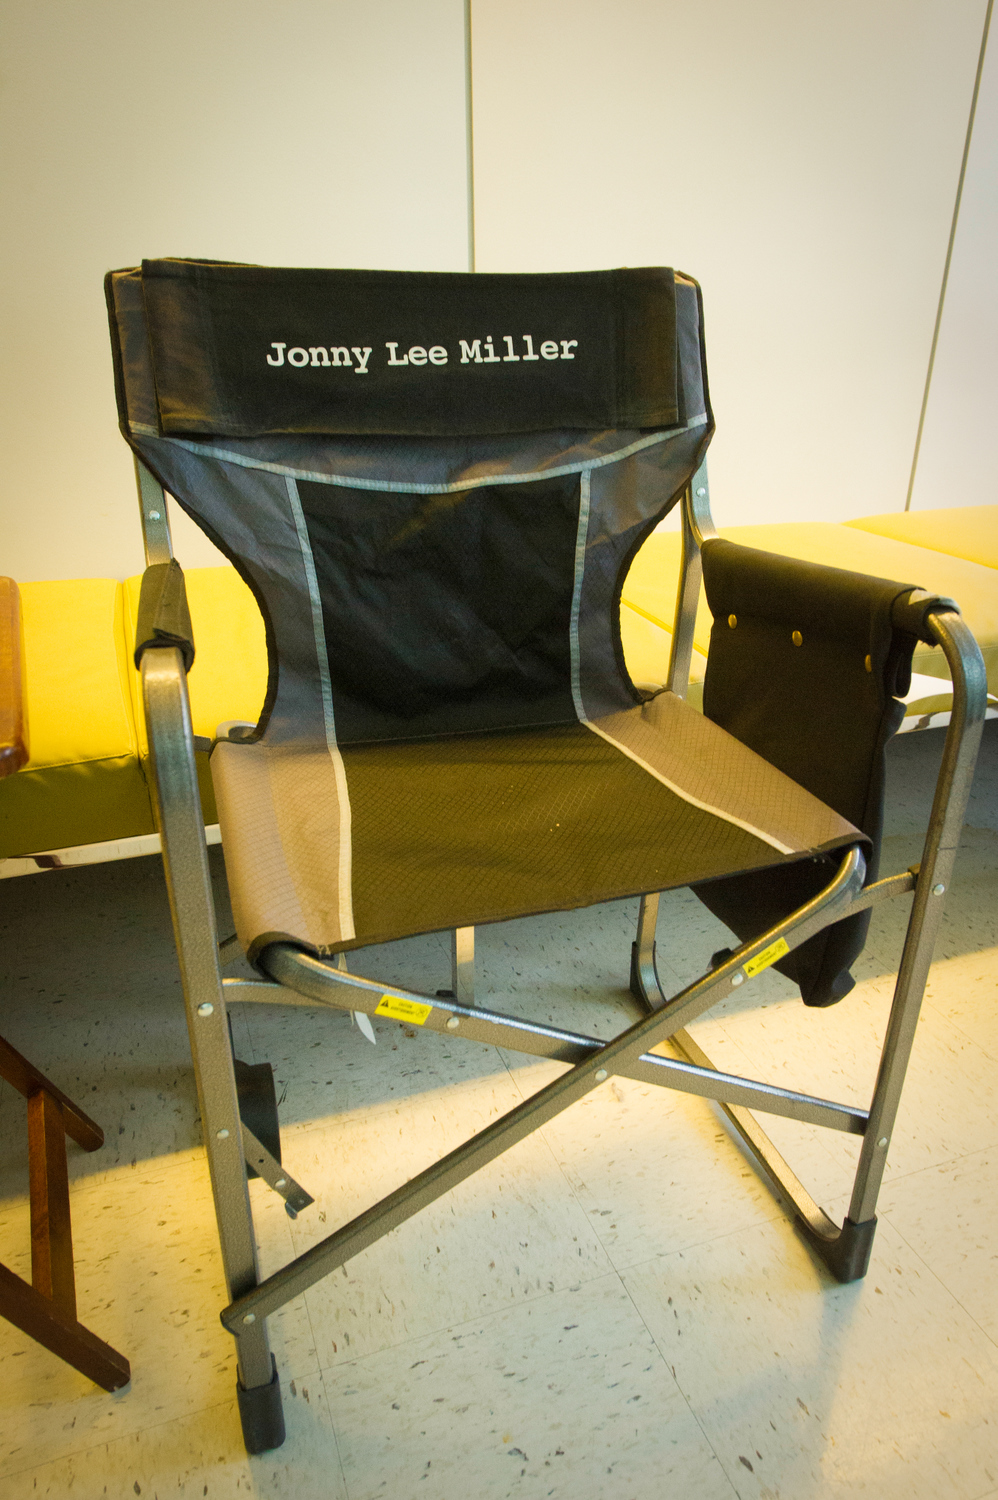 Jonny Lee Miller's chair on set